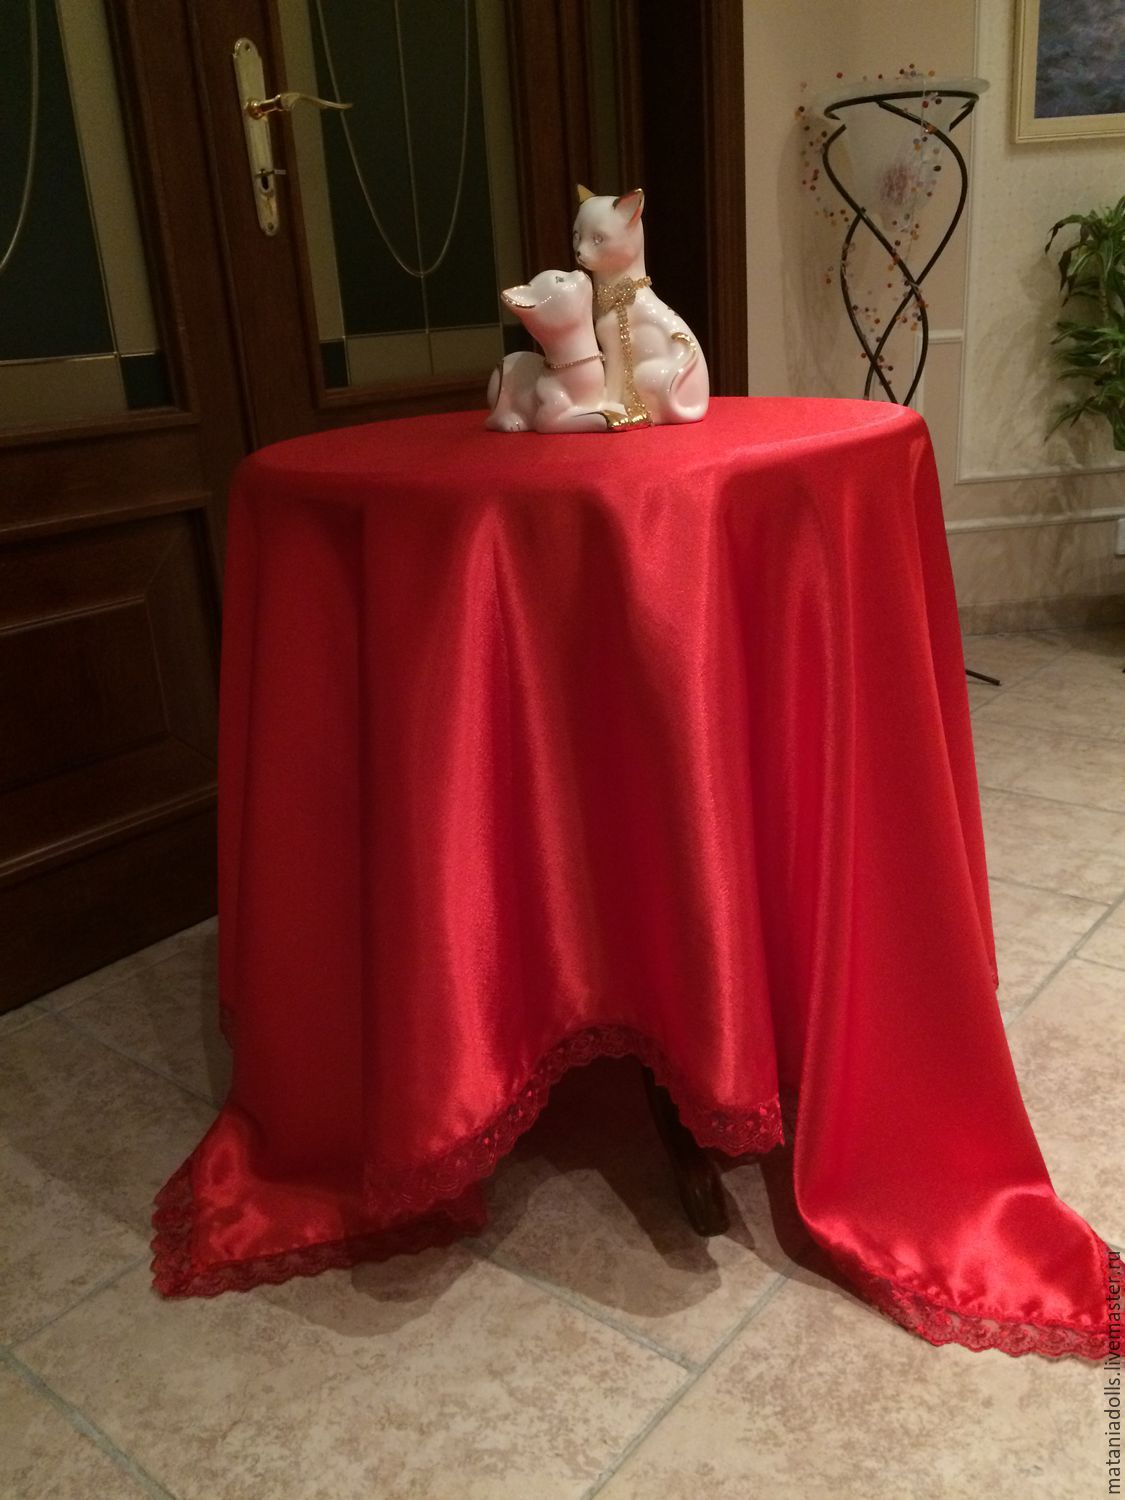 Superbe Order Tablecloth Red Silk. Matania. Livemaster. Red